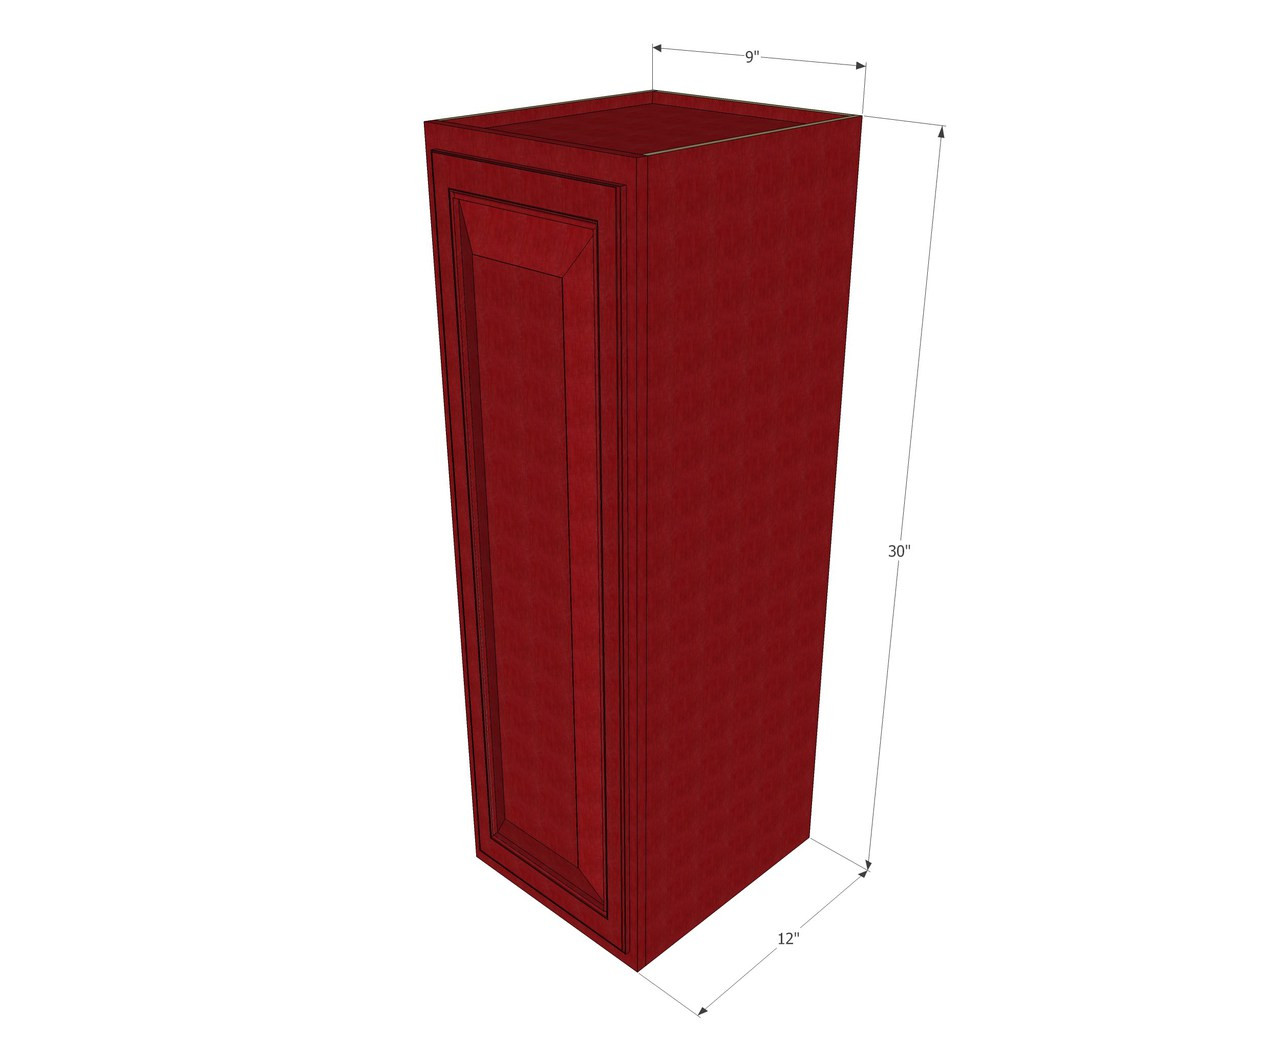 9 inch wide kitchen cabinet 12 inch wide storage cabinet for Kitchen cabinets 9 inch